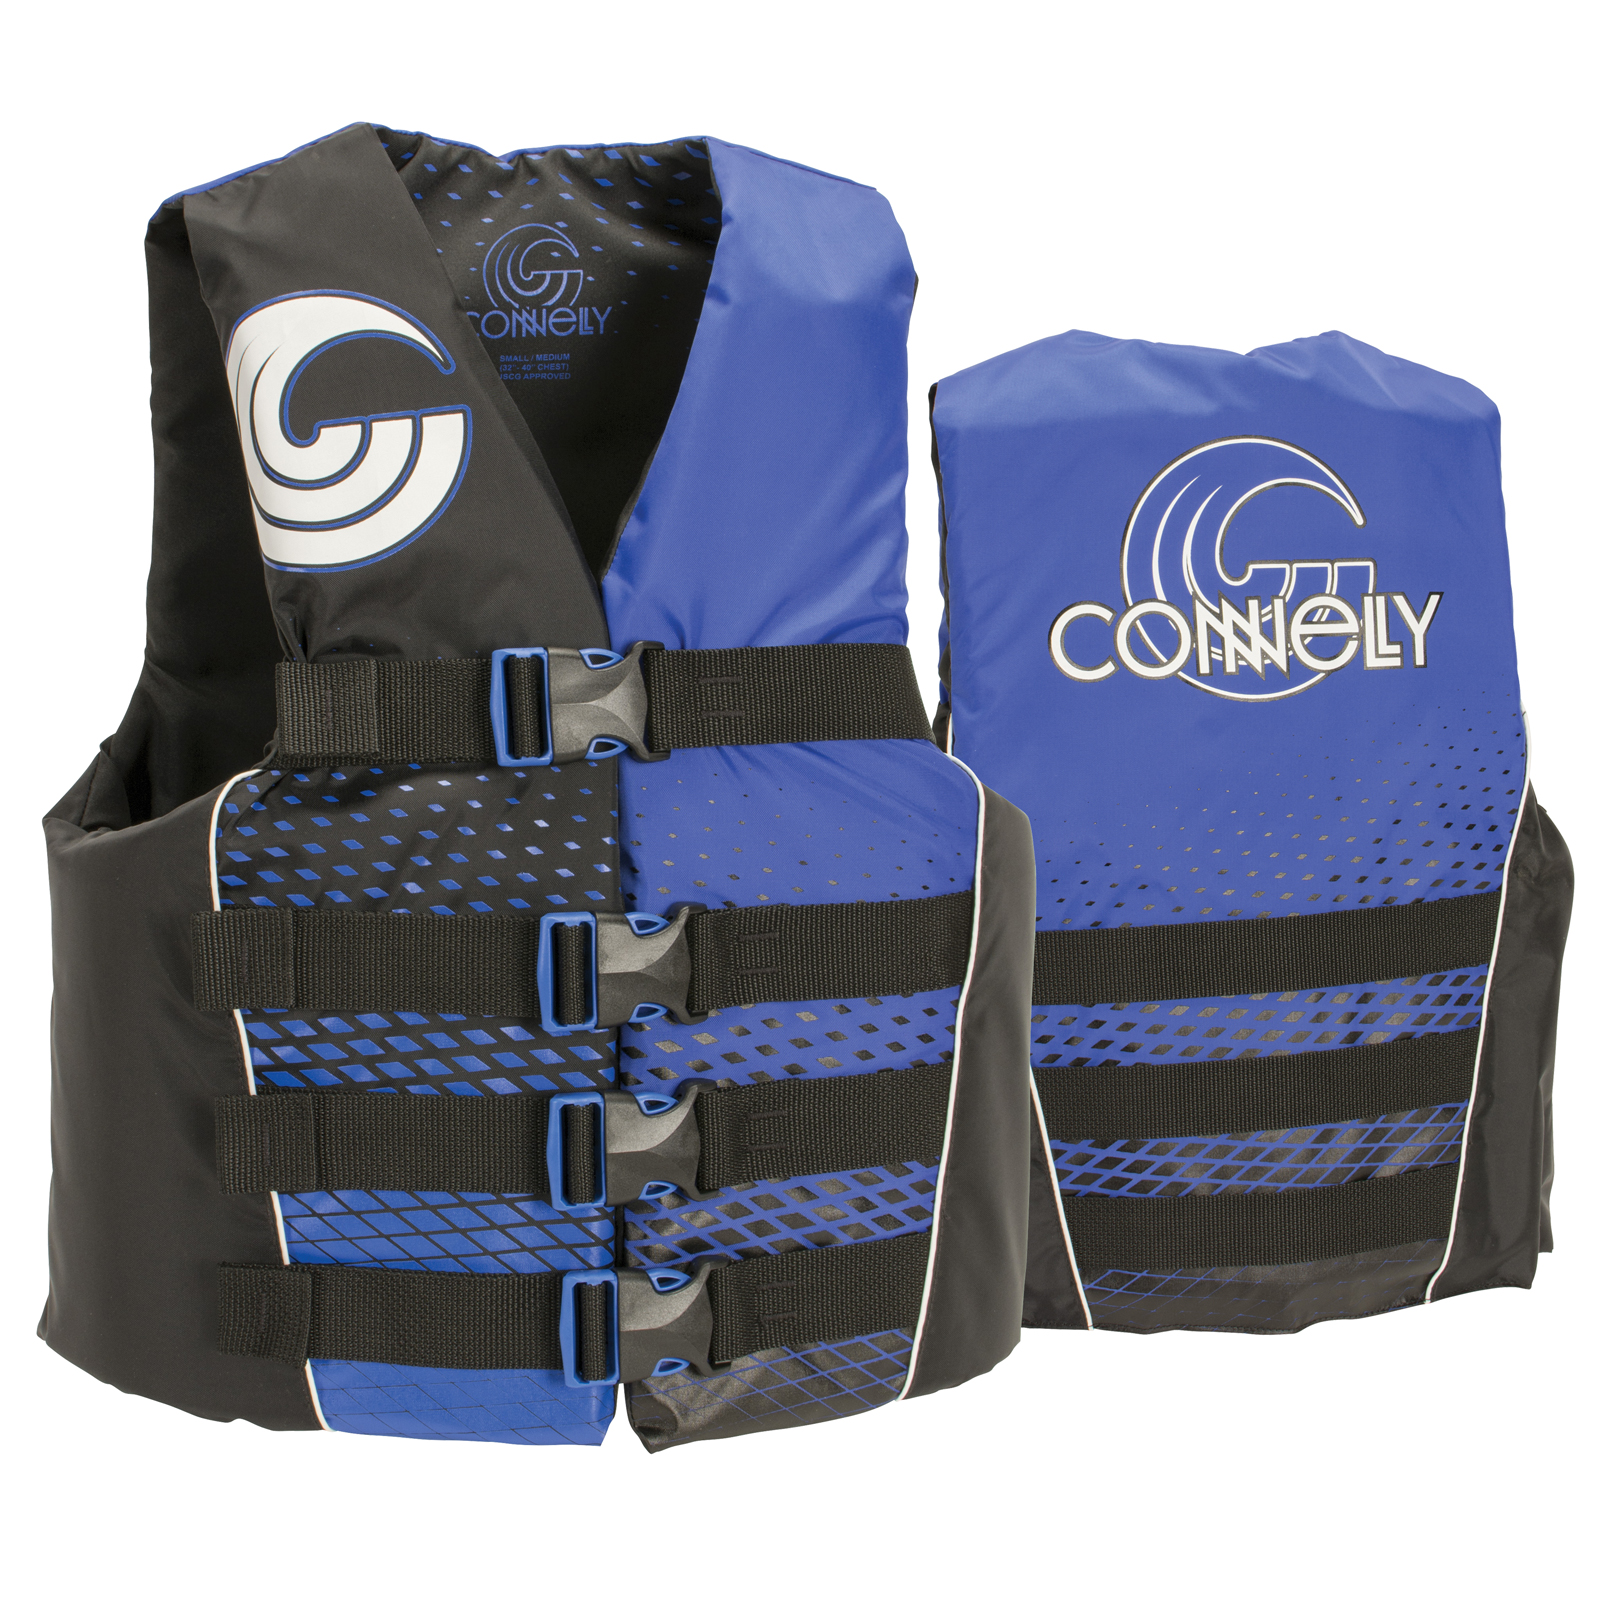 PROMO 4 BUCKLE VEST CONNELLY 2017